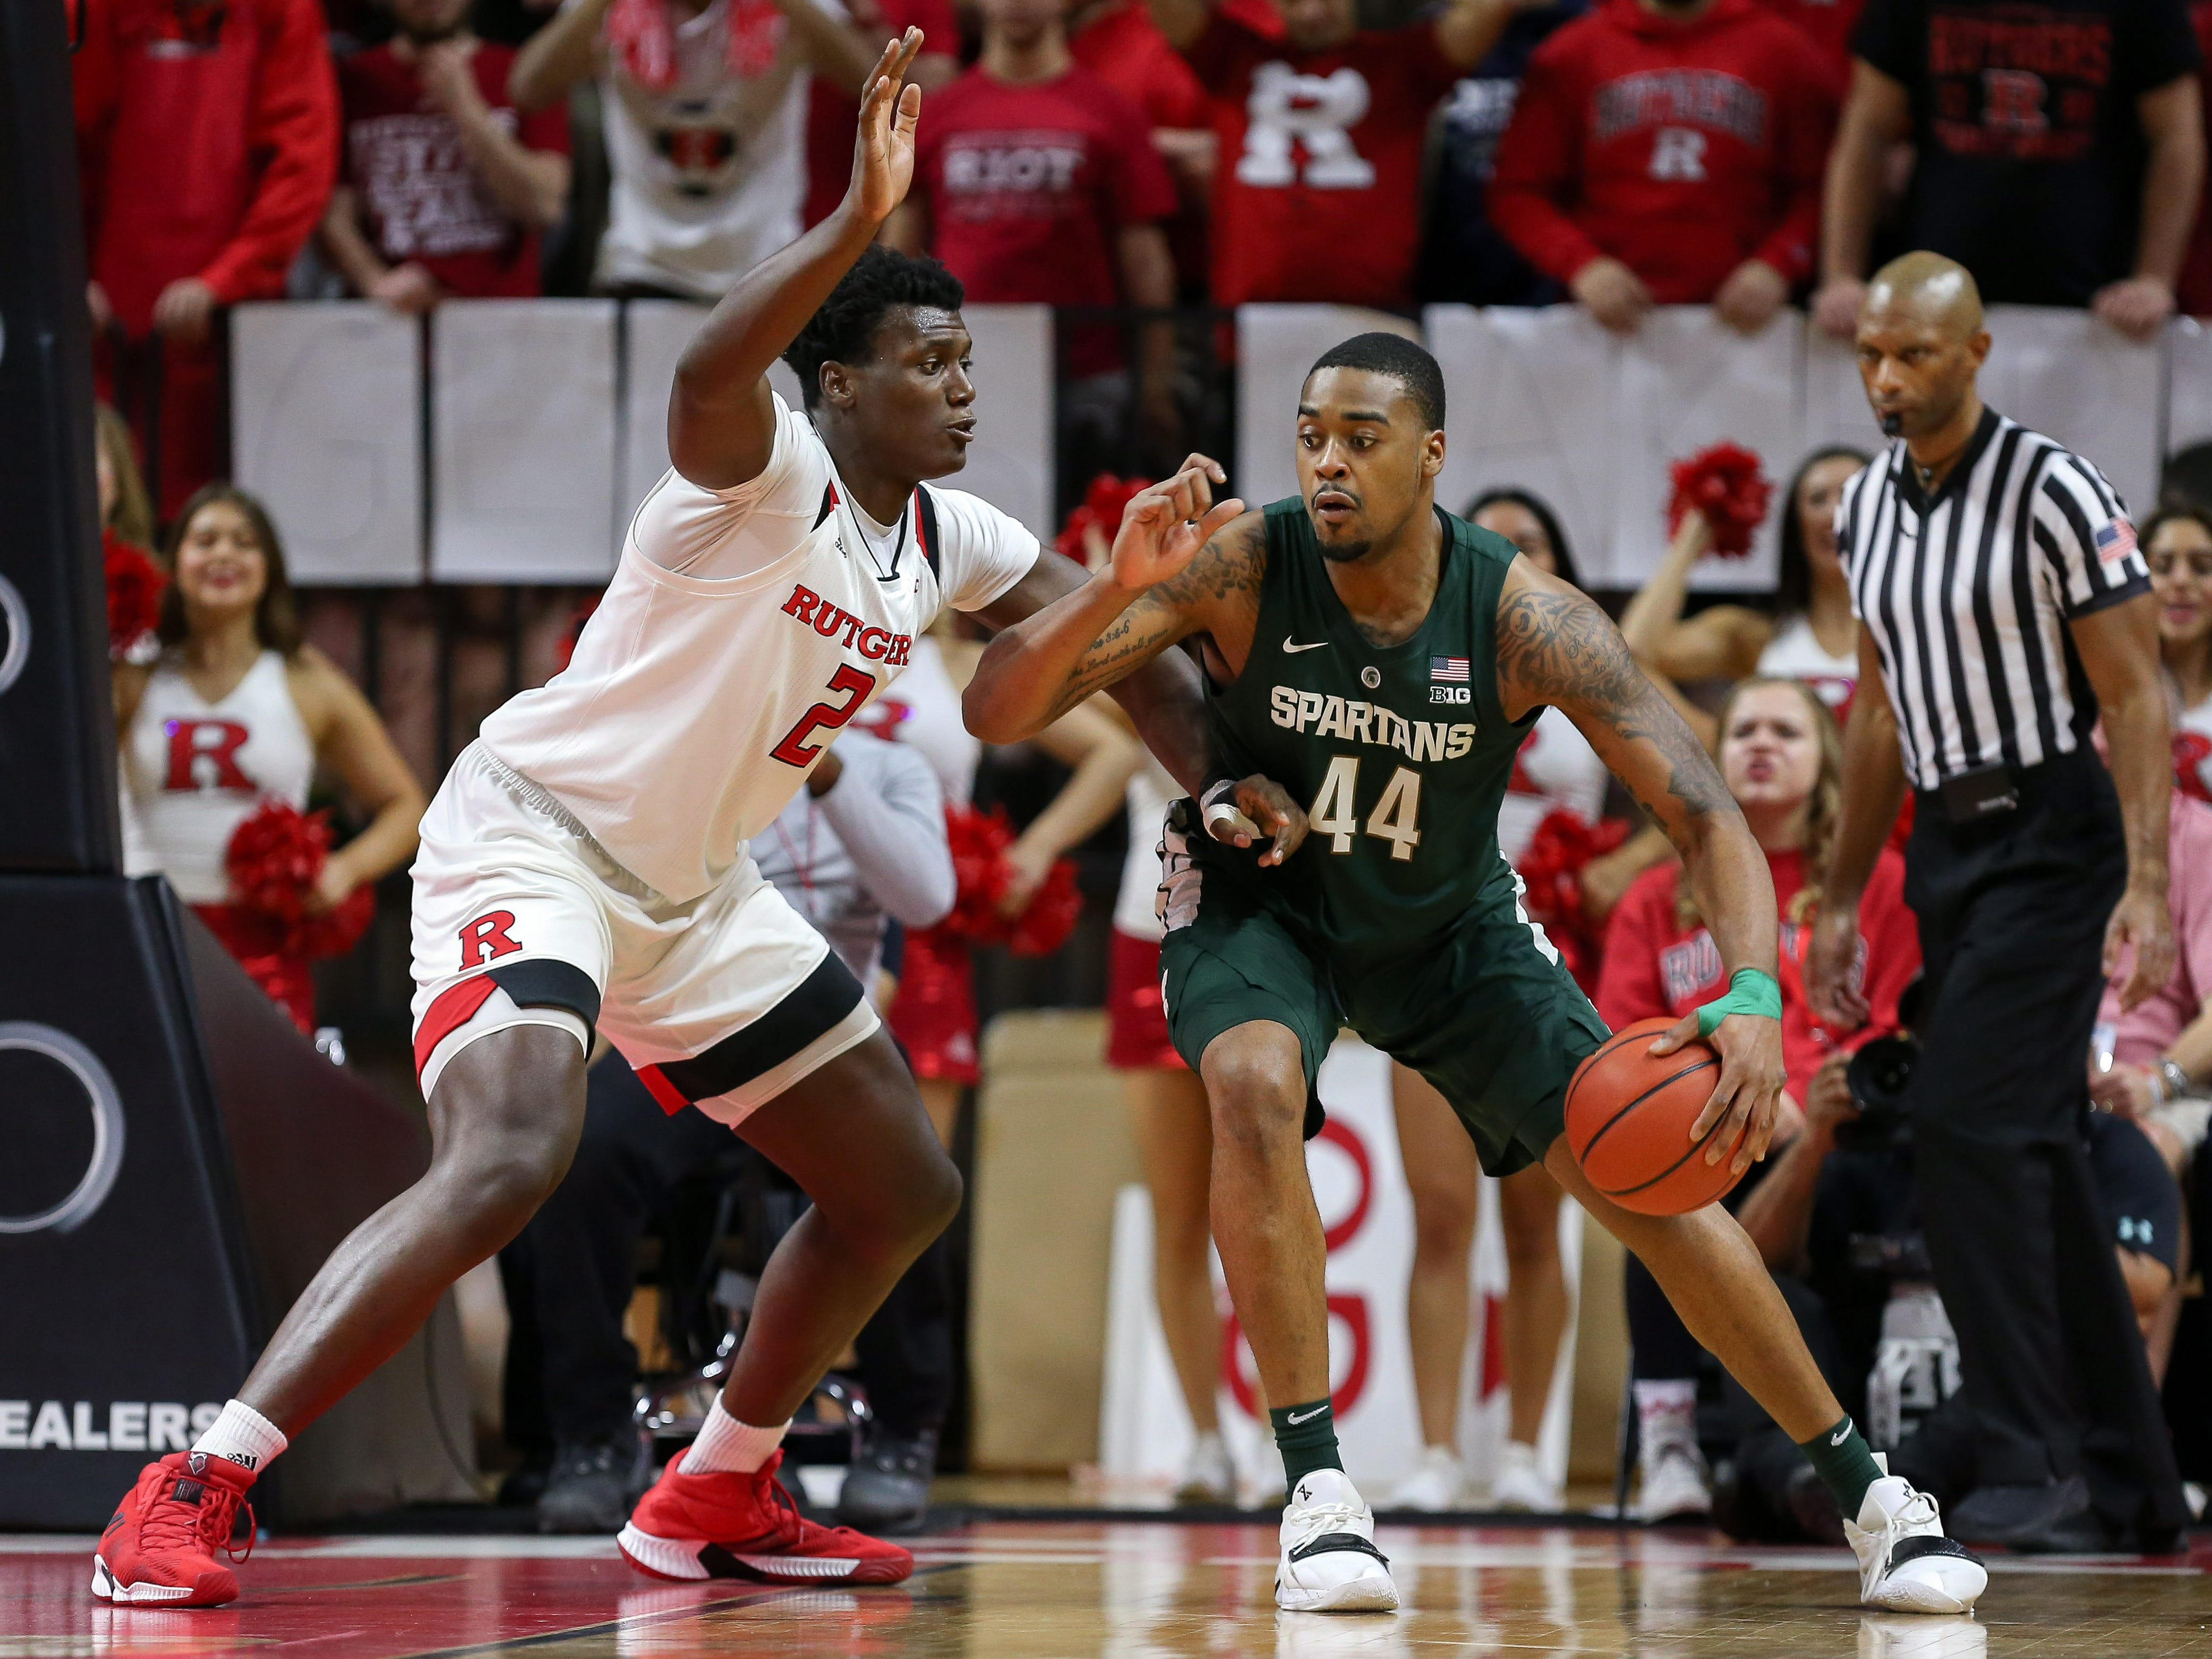 Michigan State Spartans forward Nick Ward (44) posts up on Rutgers Scarlet Knights center Shaquille Doorson (2) during the second half at Rutgers Athletic Center (RAC).